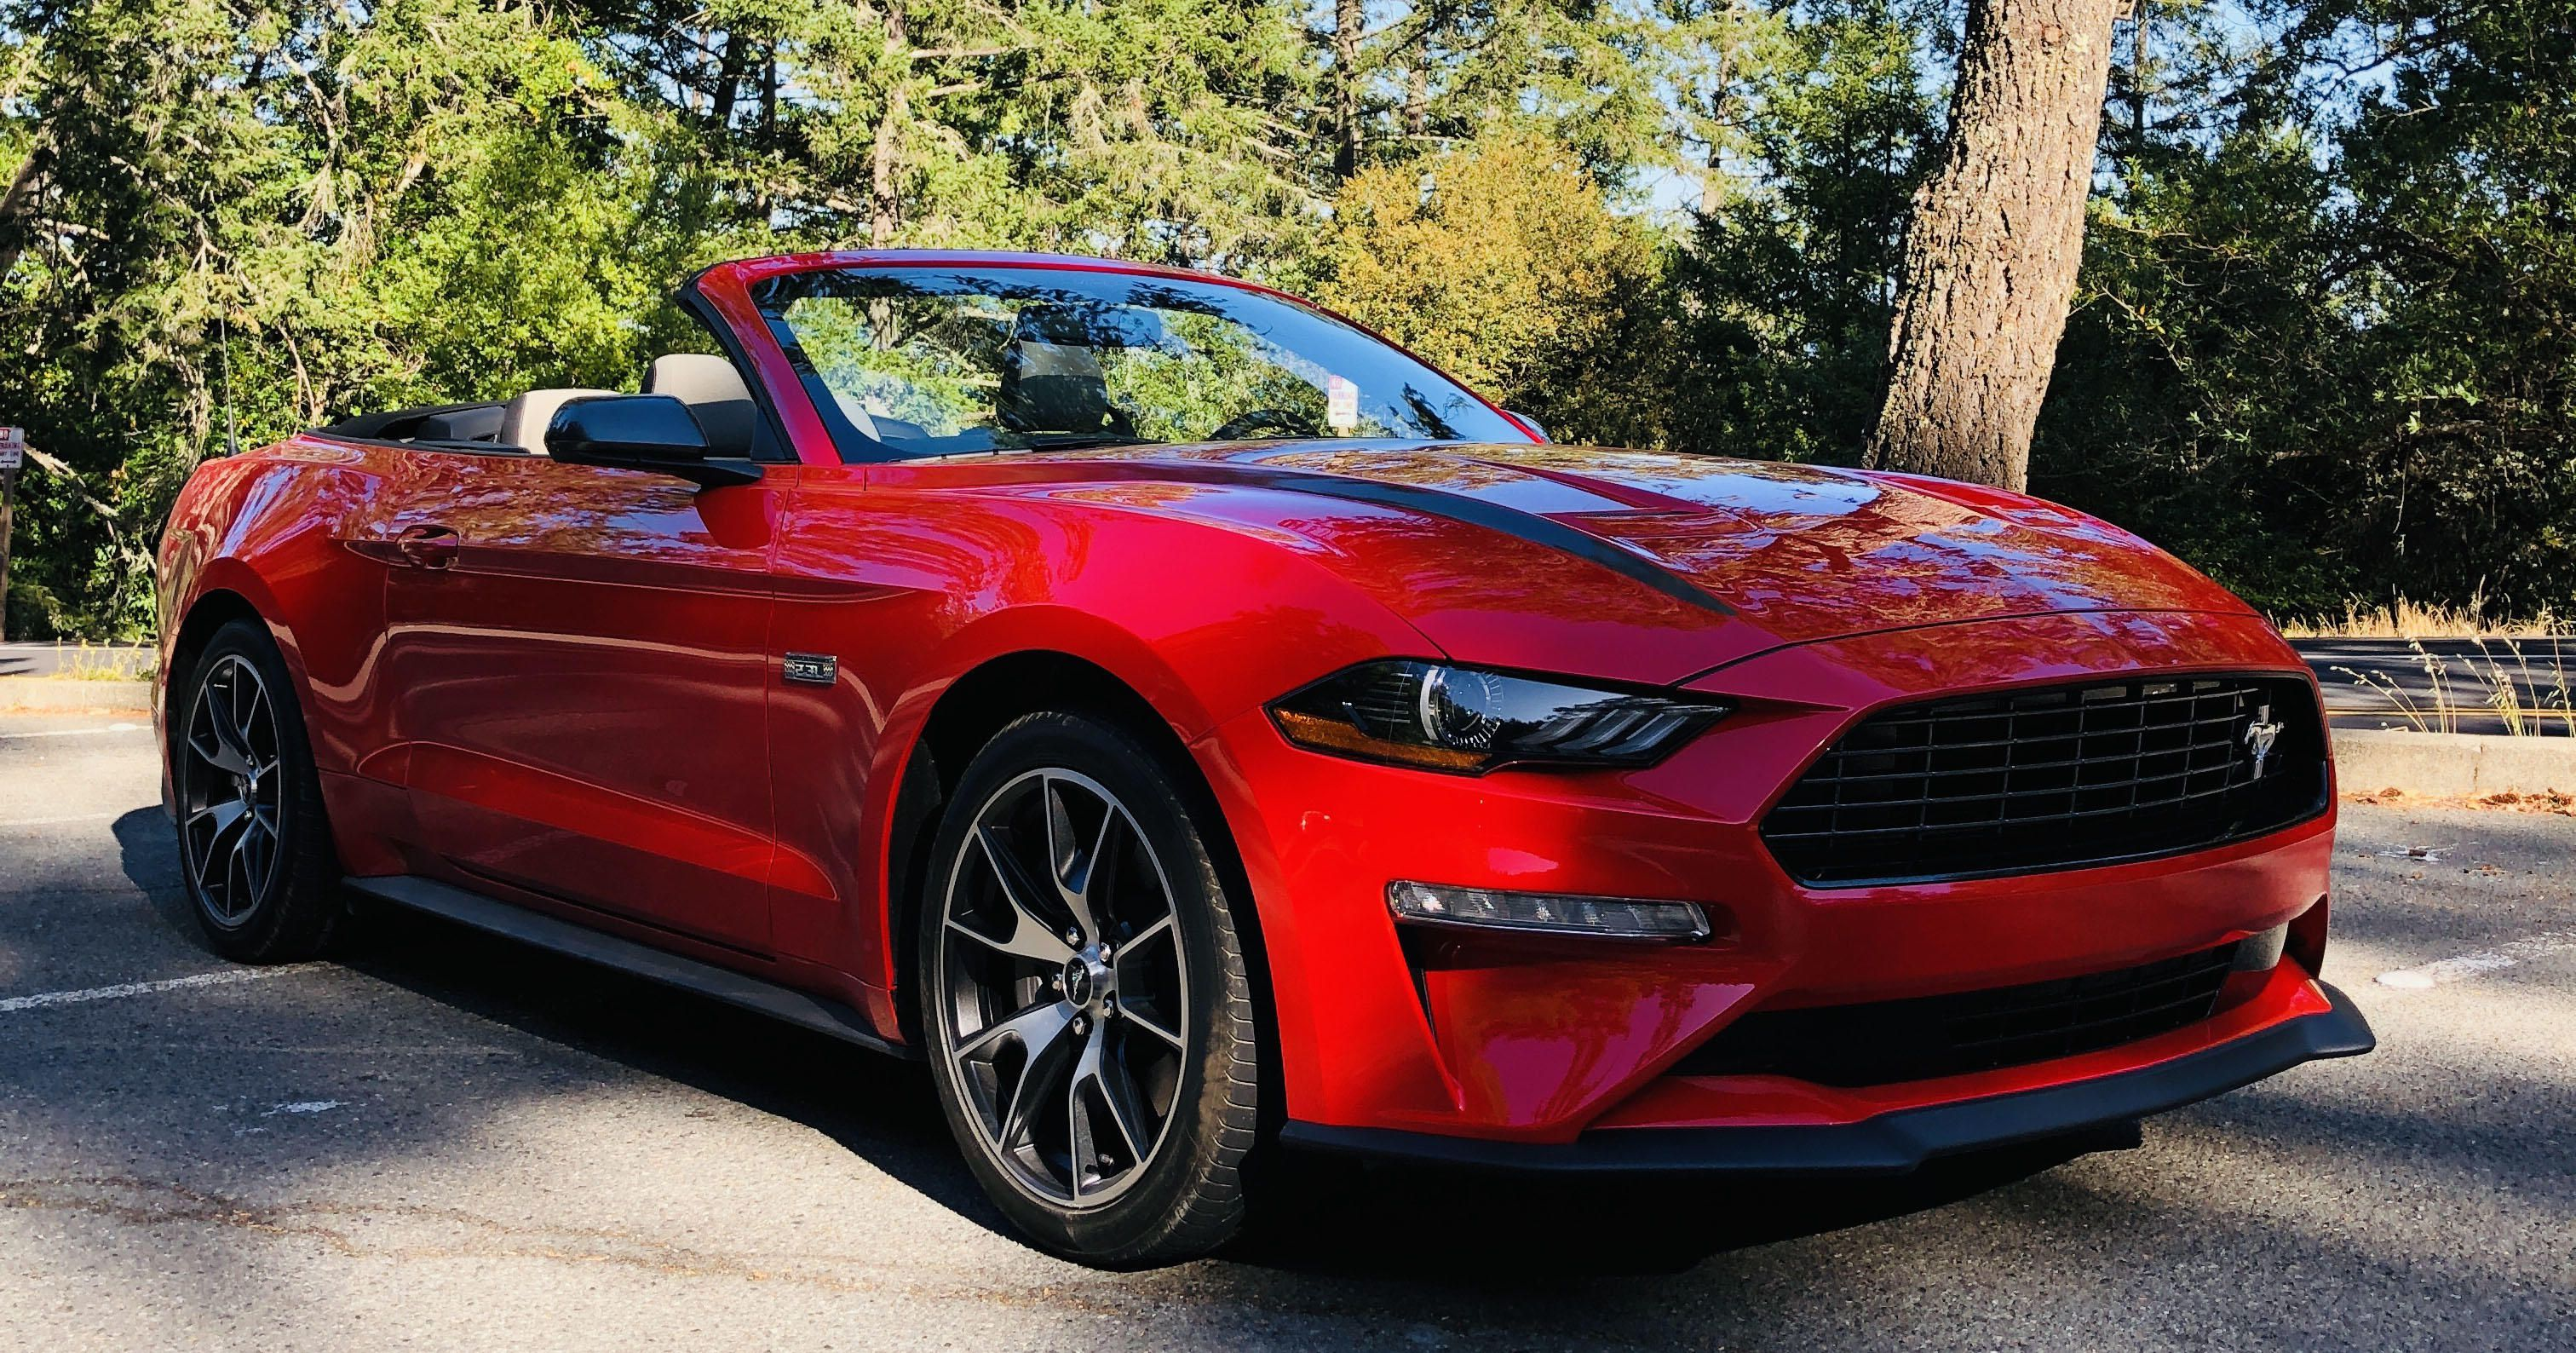 2020 Ford Mustang Turbo Never Looked So Good In 2020 Ford